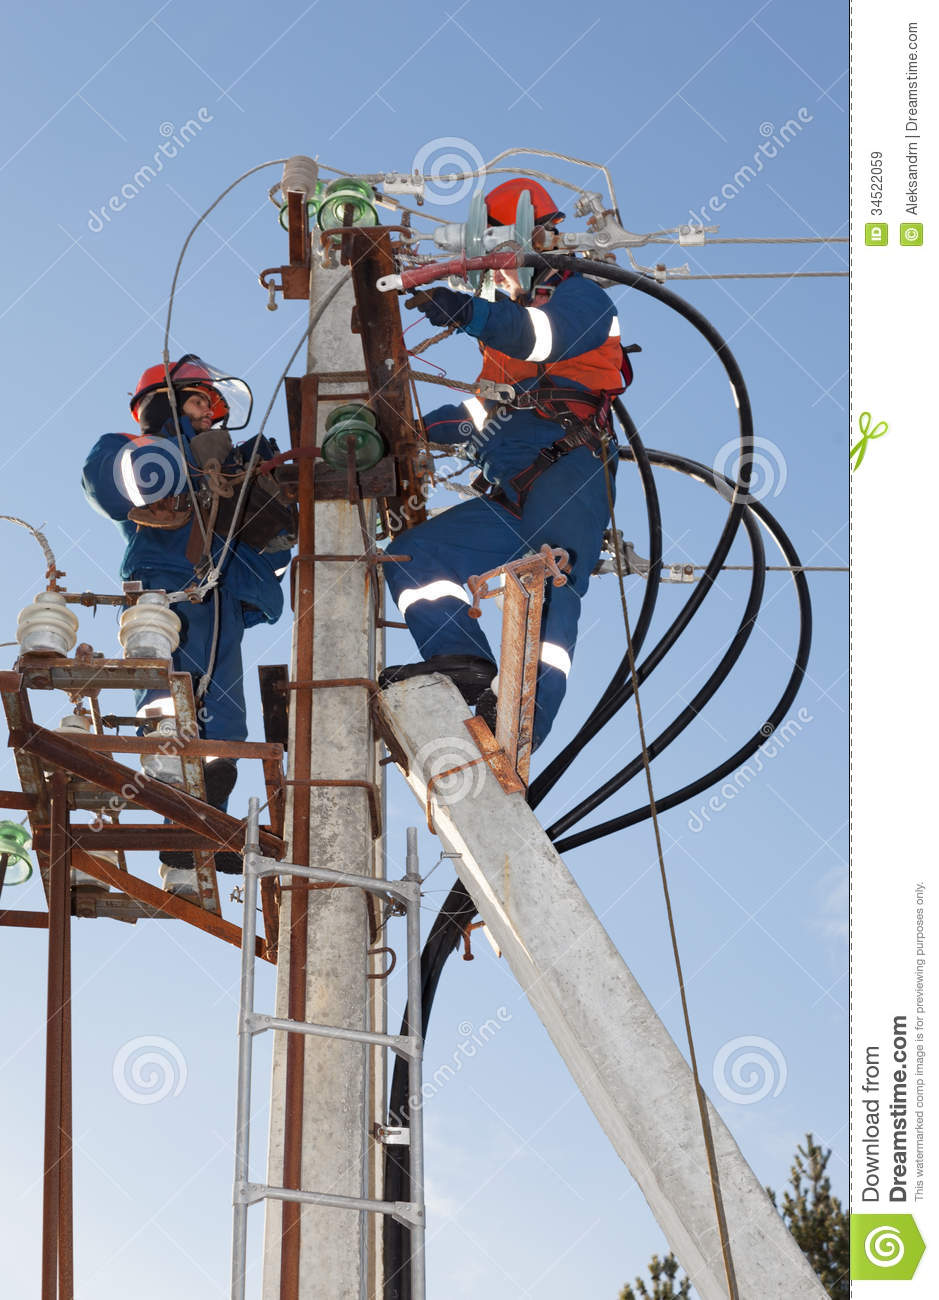 Electricians Troubleshoot On Power Lines Stock Image